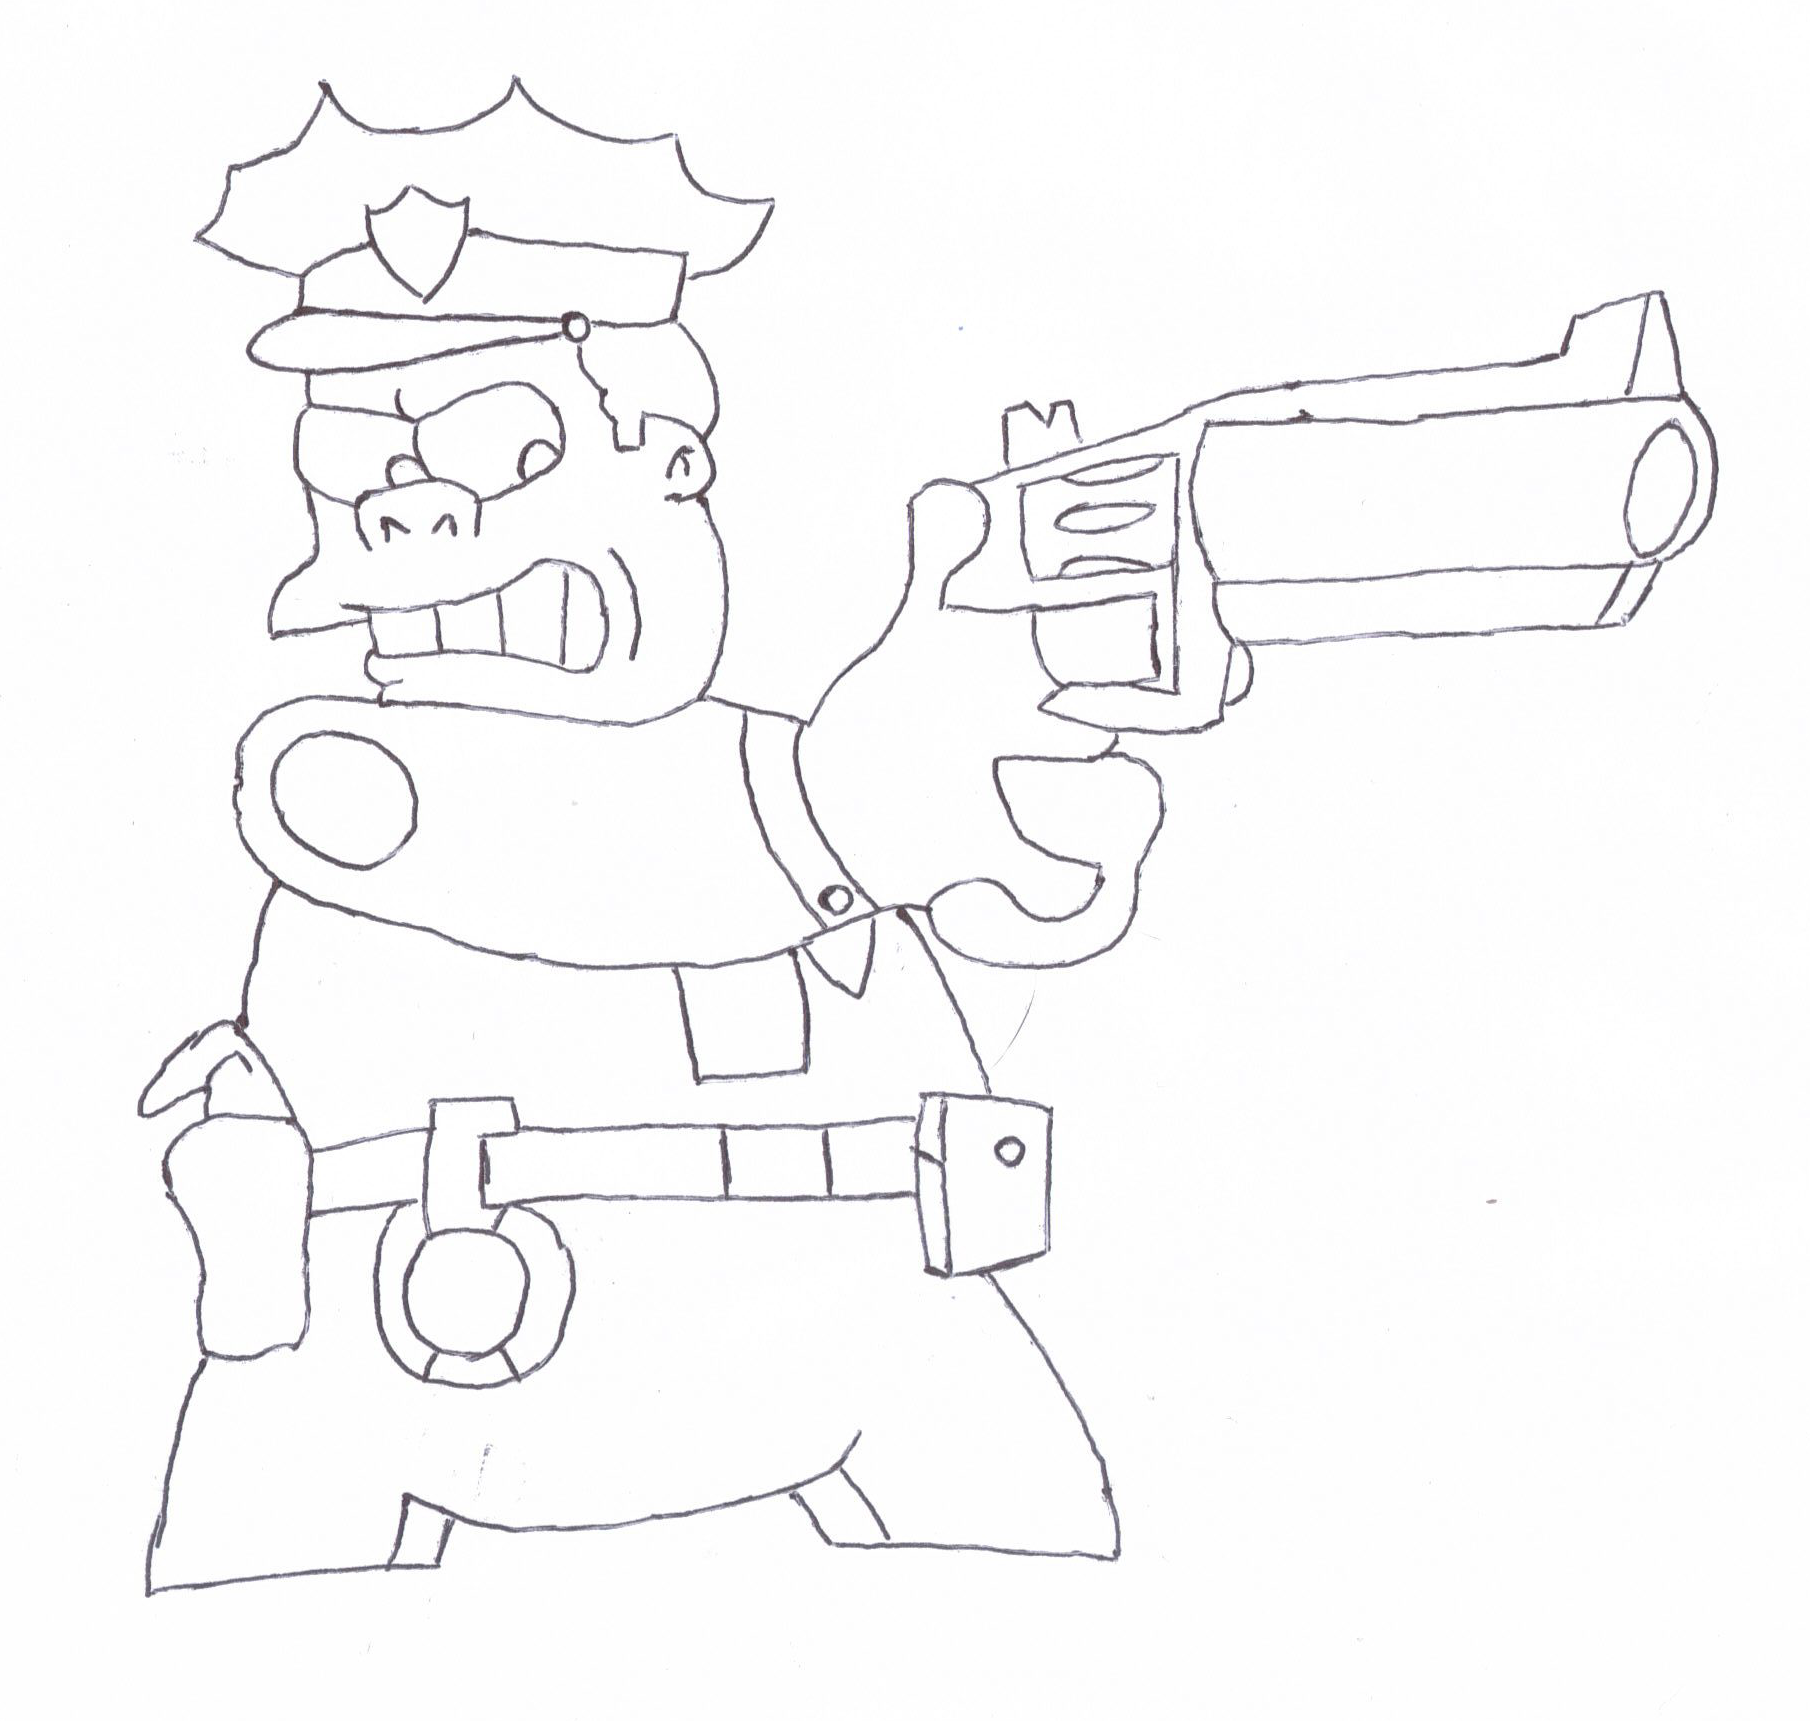 Chief Wiggum Sketch